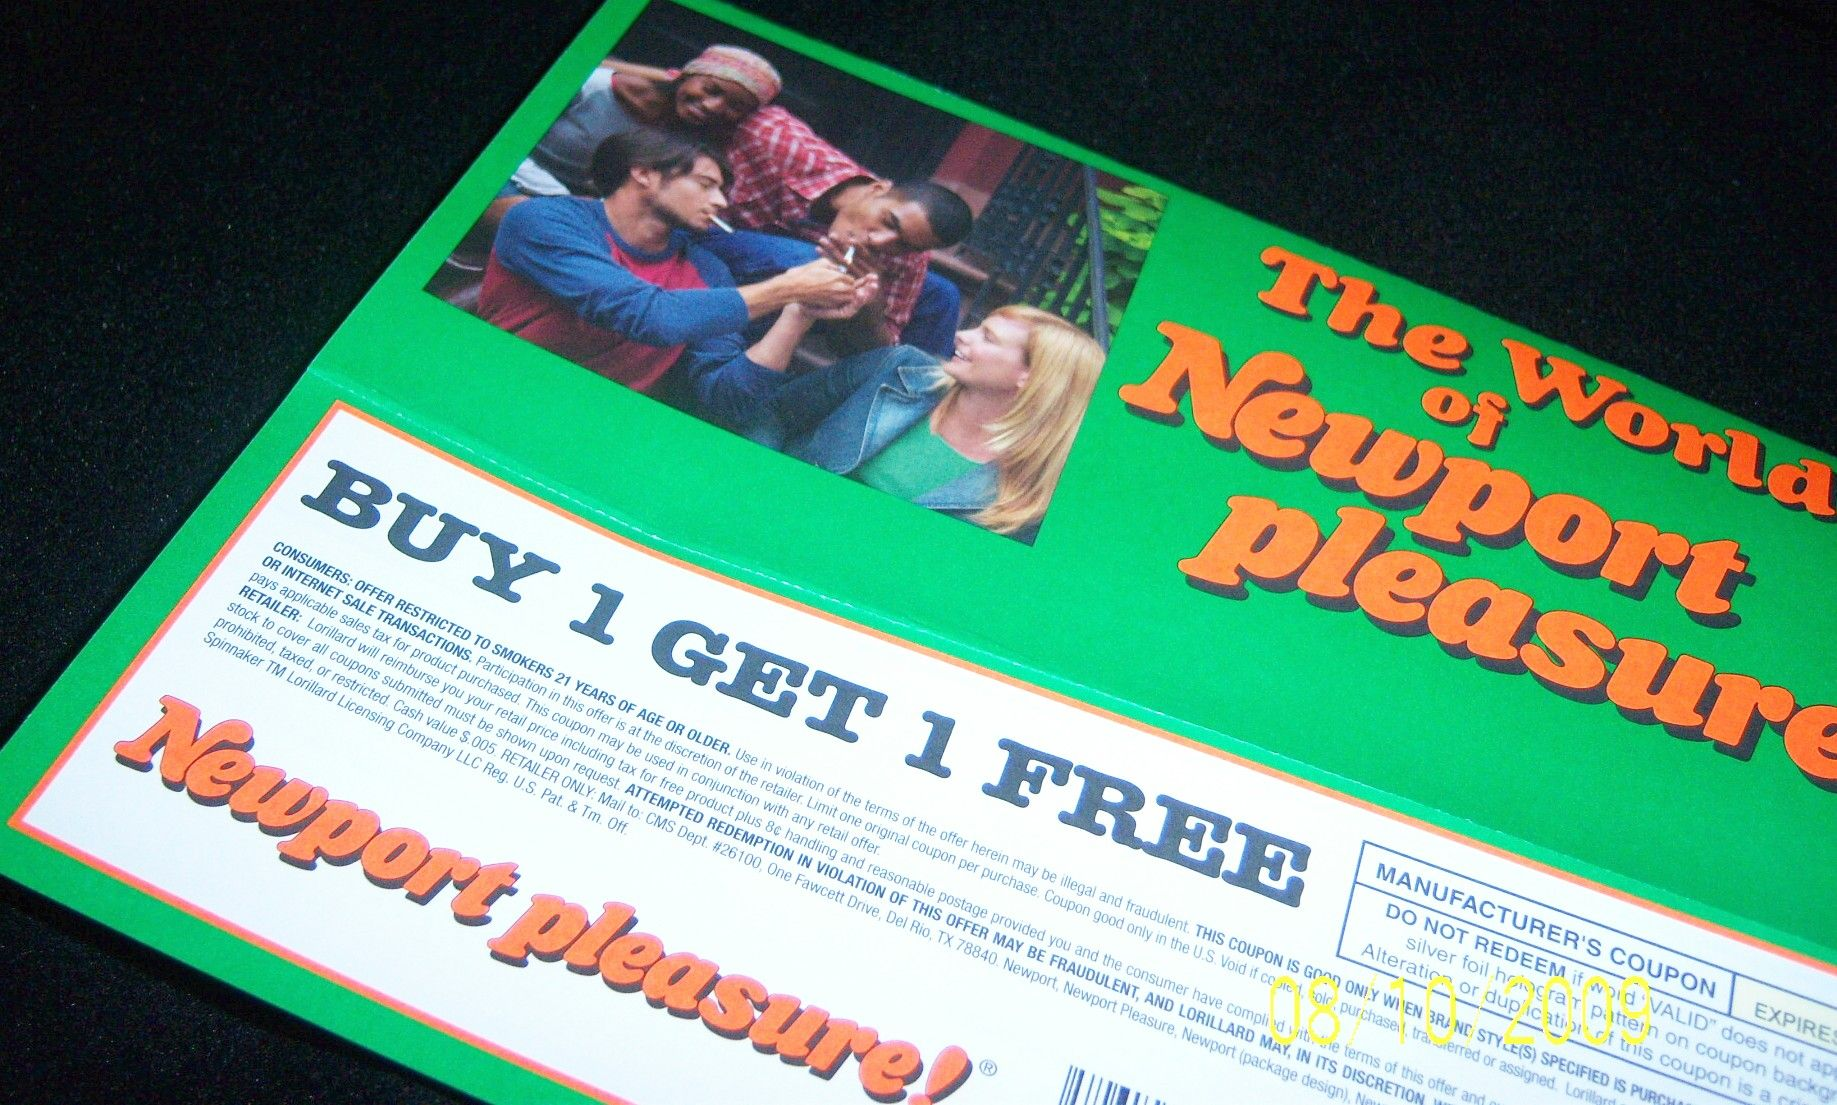 Buy Manufacturer Coupons >> Pin By Debi On Coupons Newport Cigarettes Cigarette Coupons Free